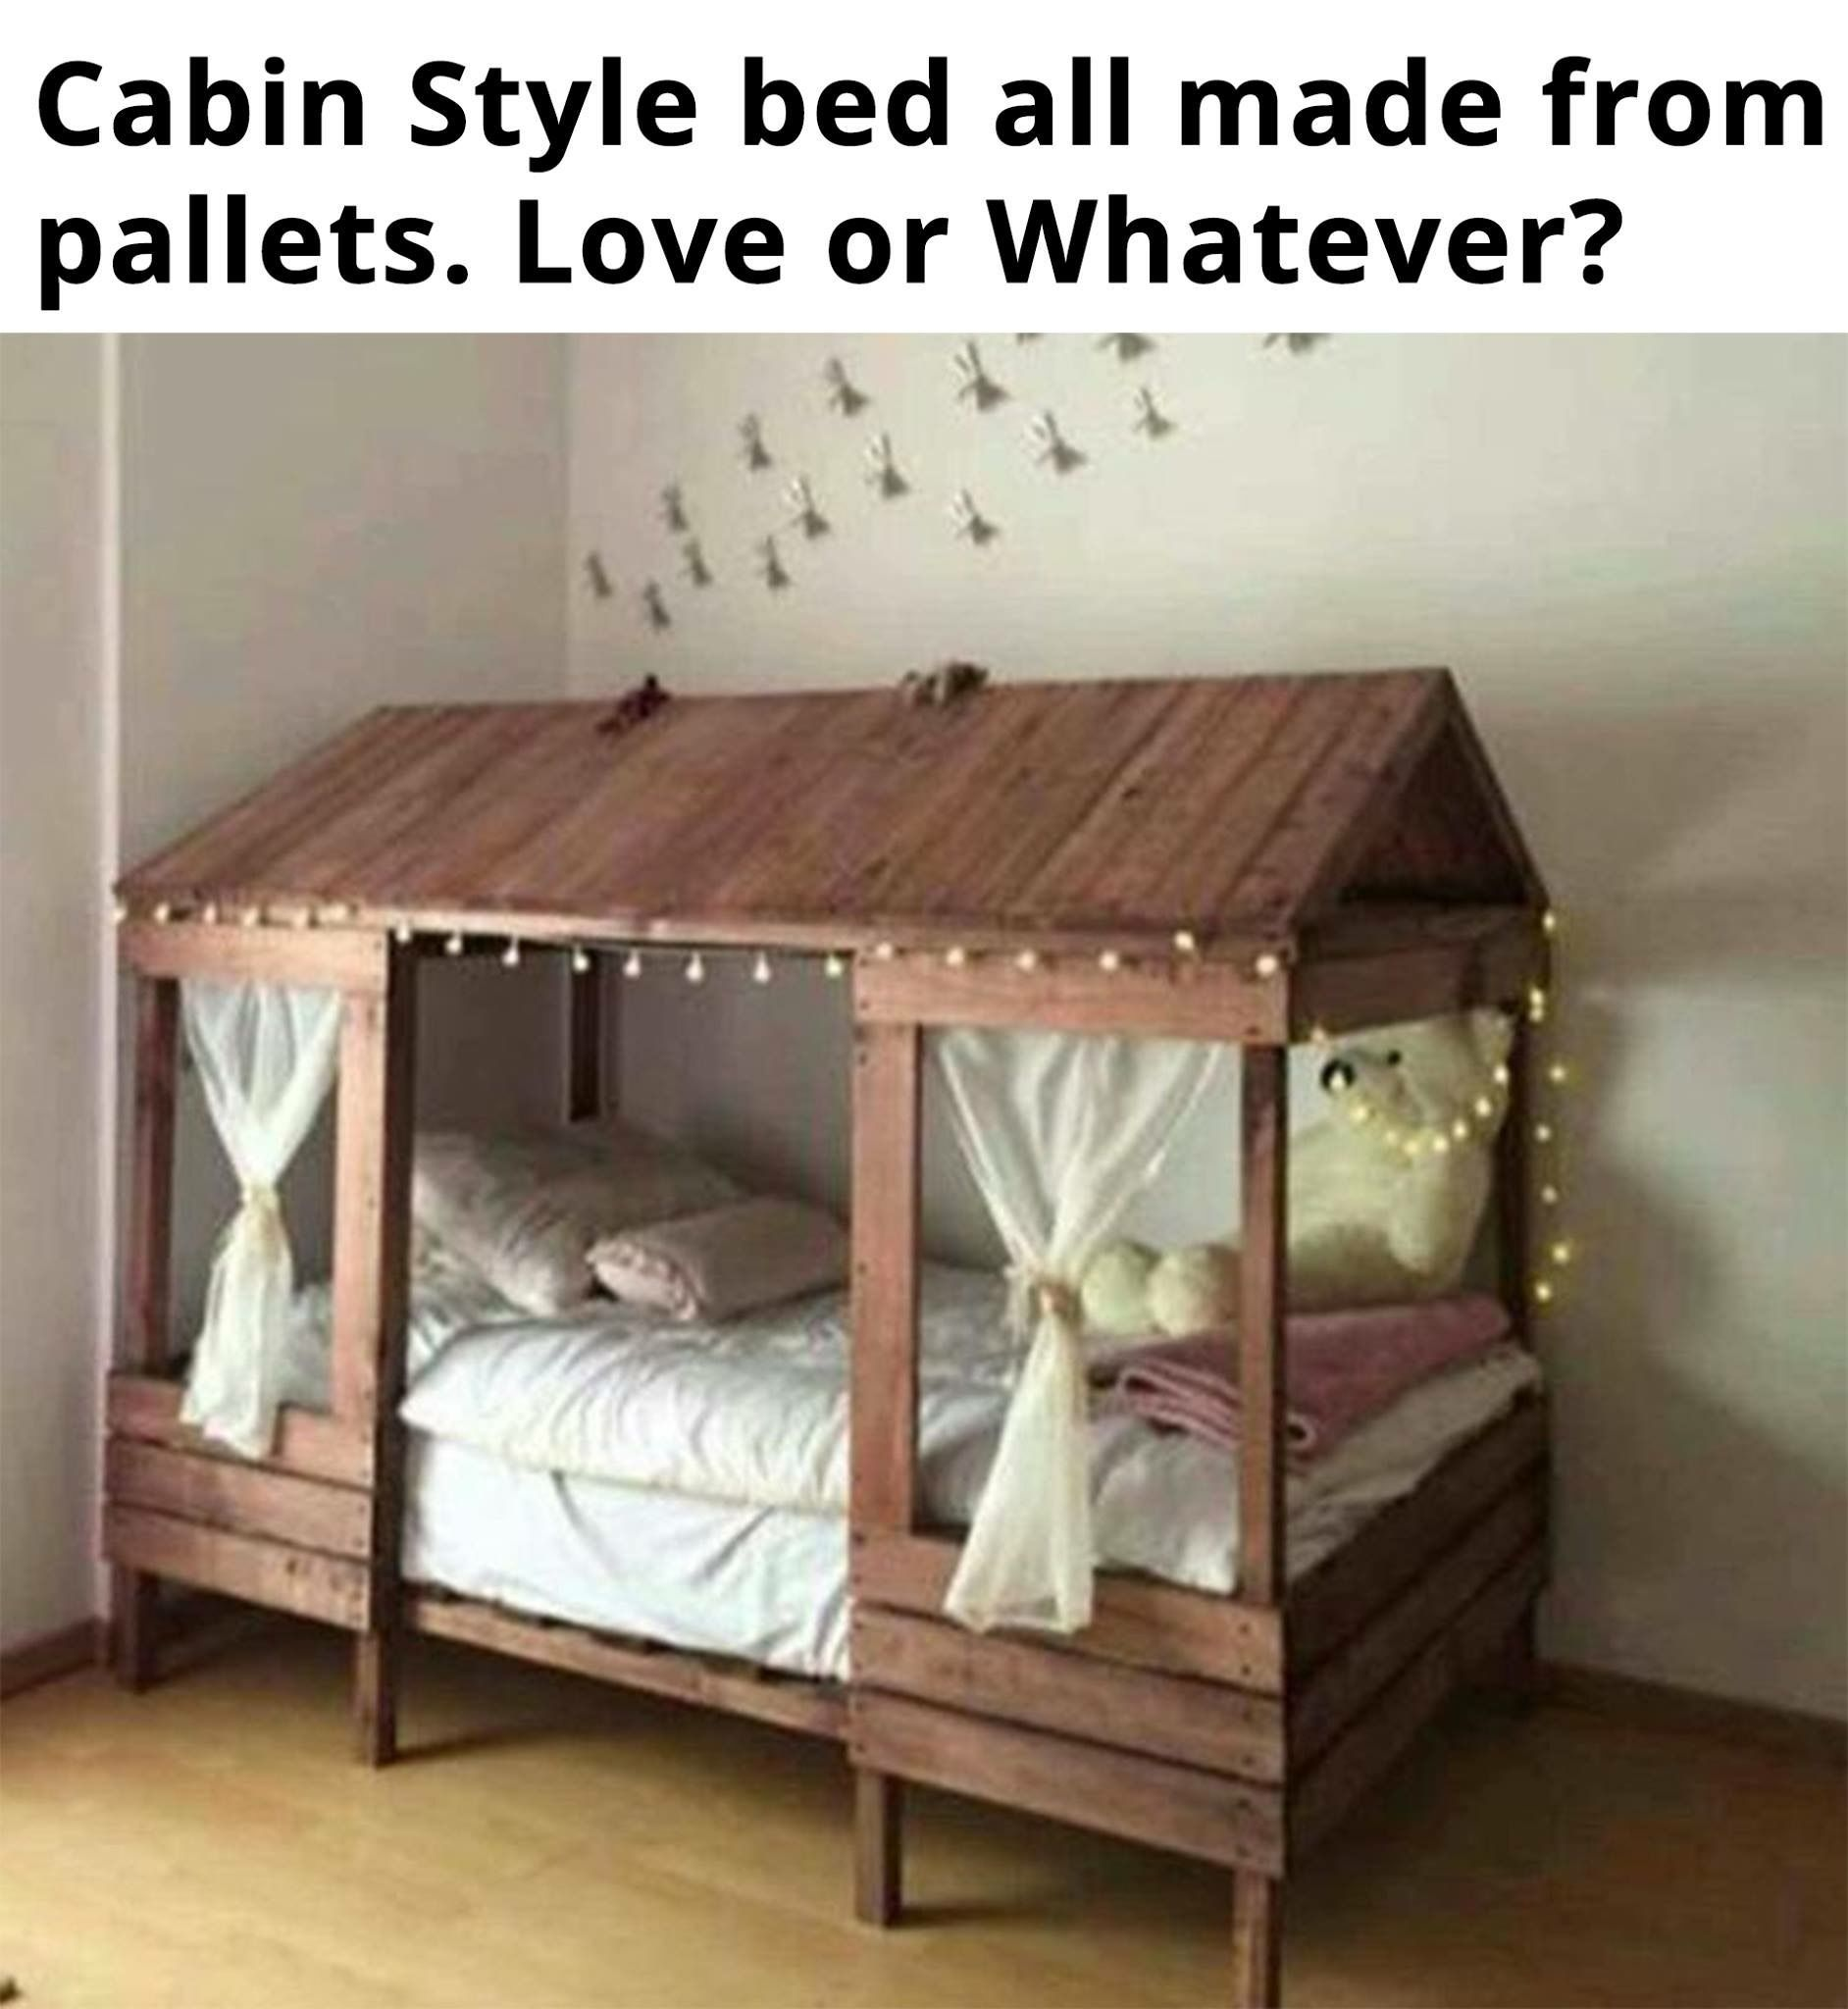 Love this idea for a toddler bed. Looks simple enough to